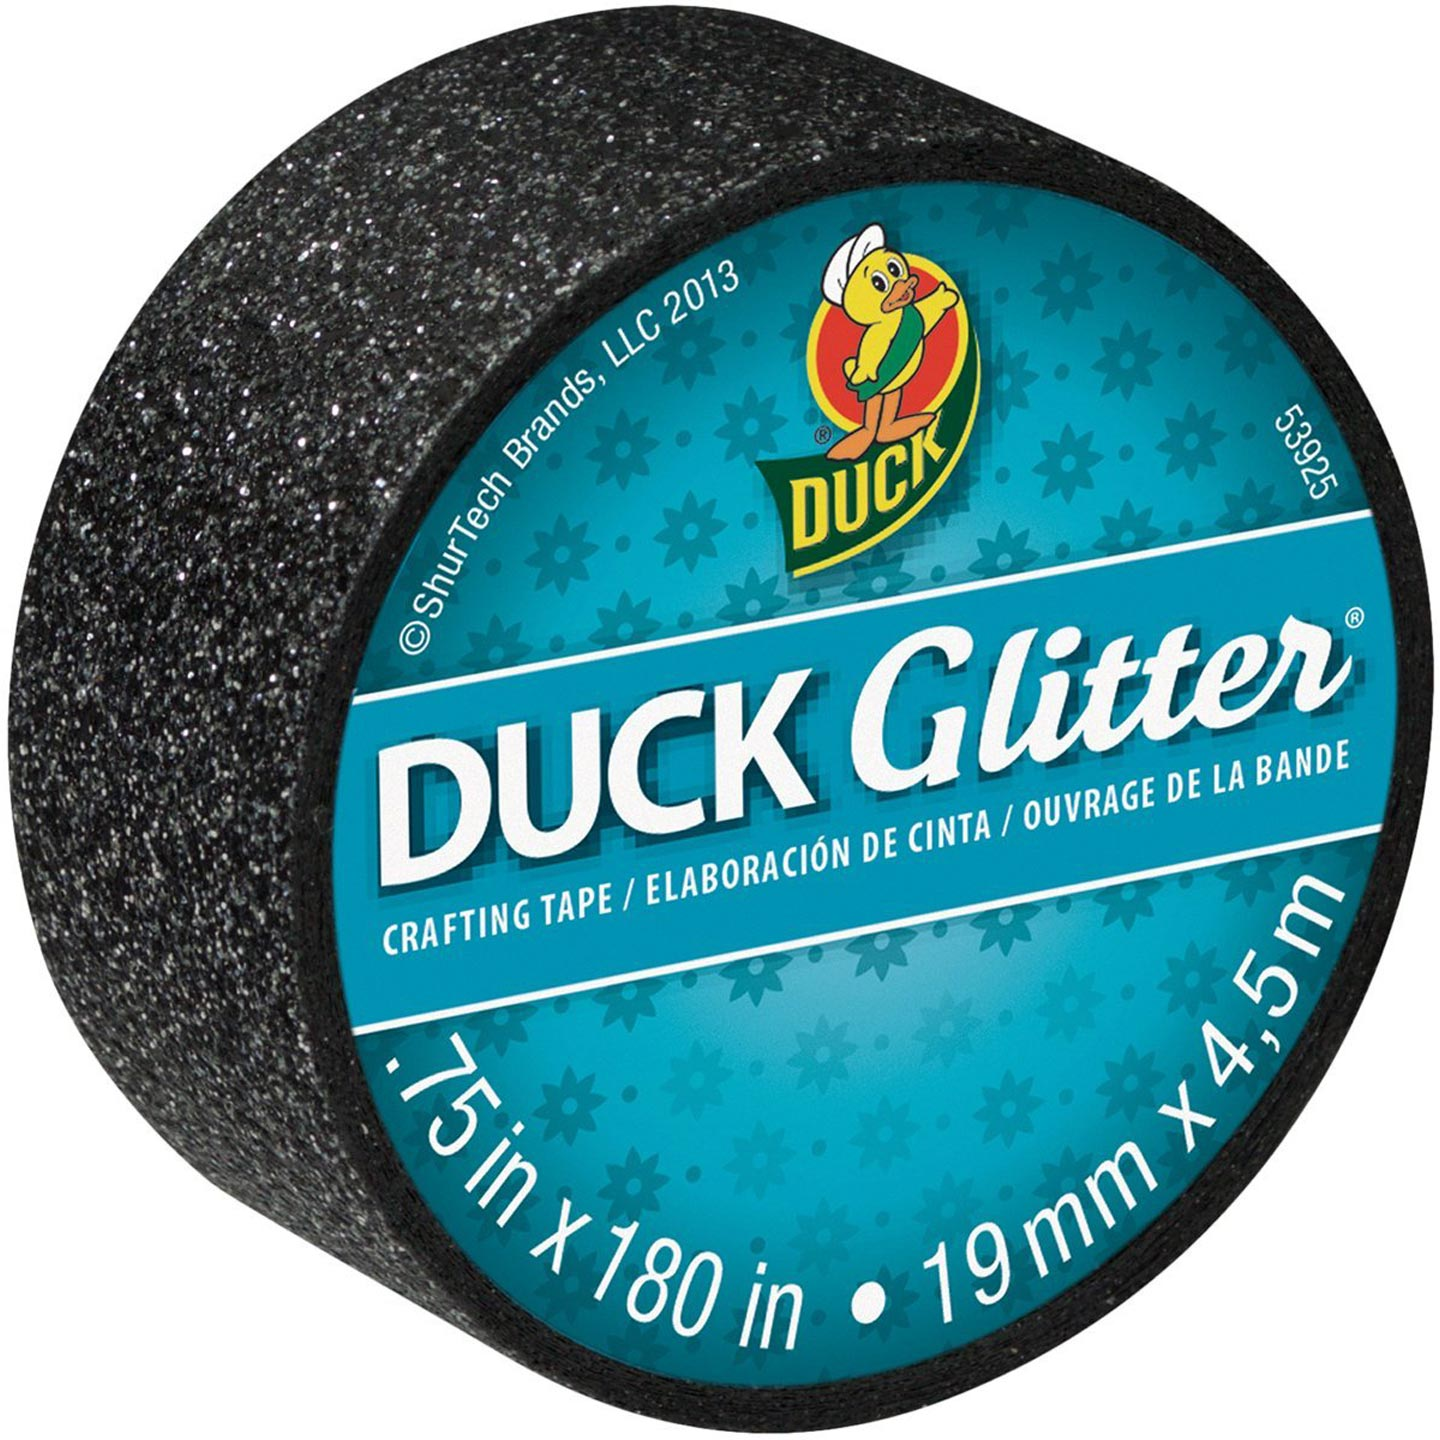 Duck Glitter Crafting Tape. Black. .75 in x 5 yd